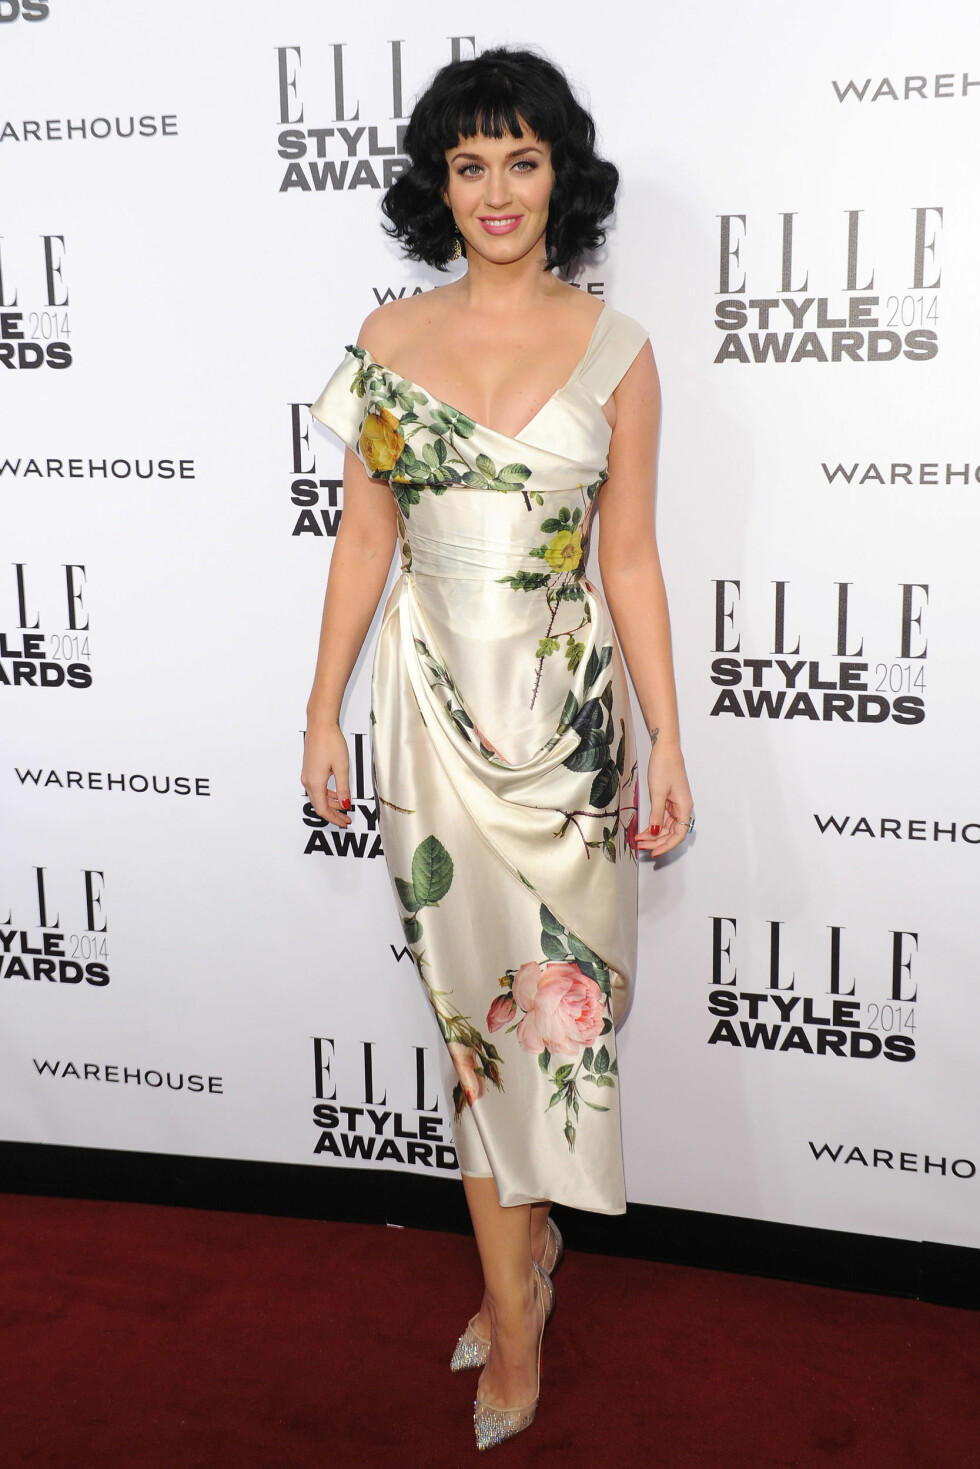 Katy Perry attending the Elle Style Awards 2014.  Held at One Embankment, London, on Tuesday February 18, 2014                      Katy Perry         All Over Press Foto: Retna/Photoshot/All Over Press